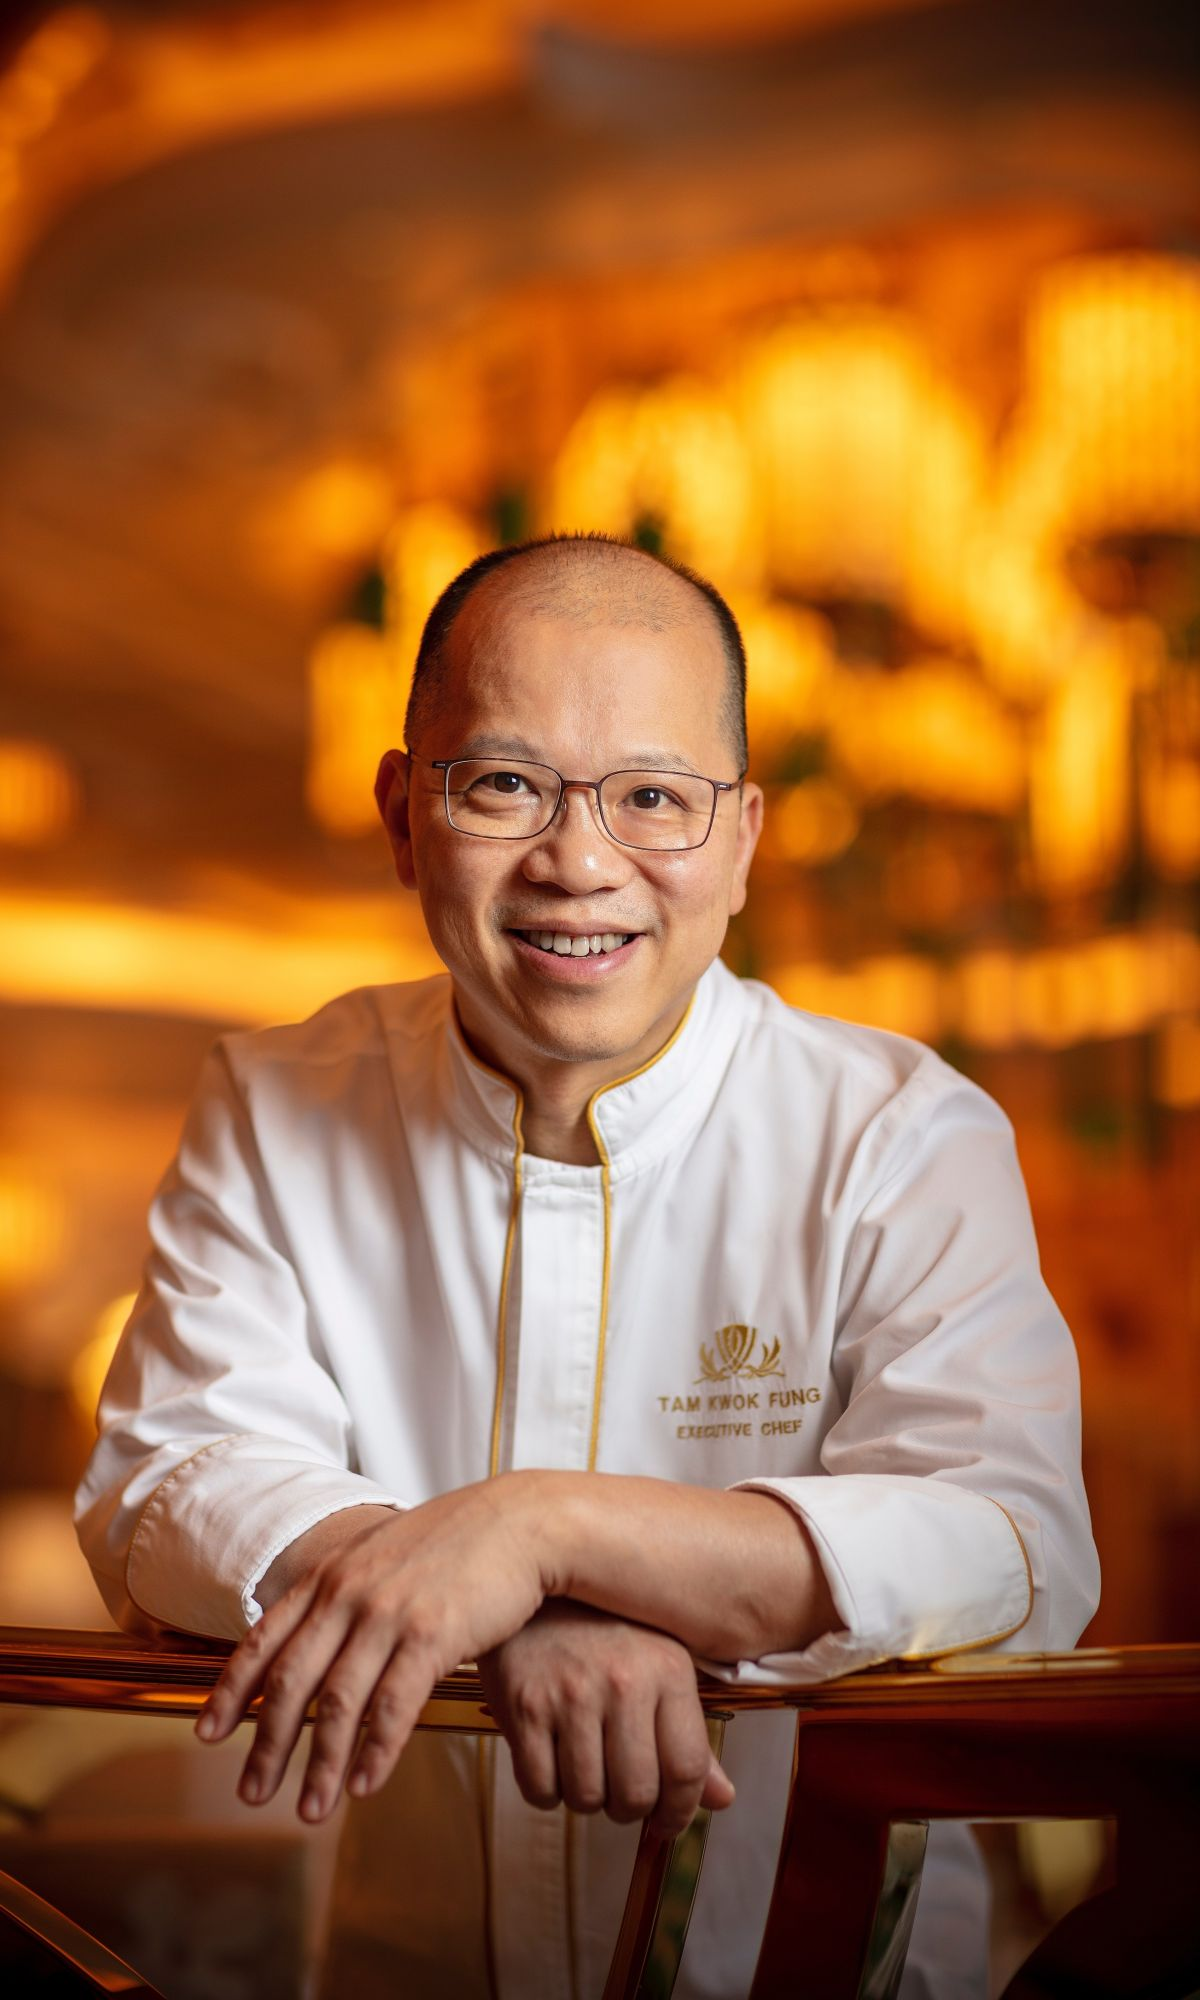 Tam Kwok-Fung Shares How People And Attitude Trump Food In Running A Successful Restaurant